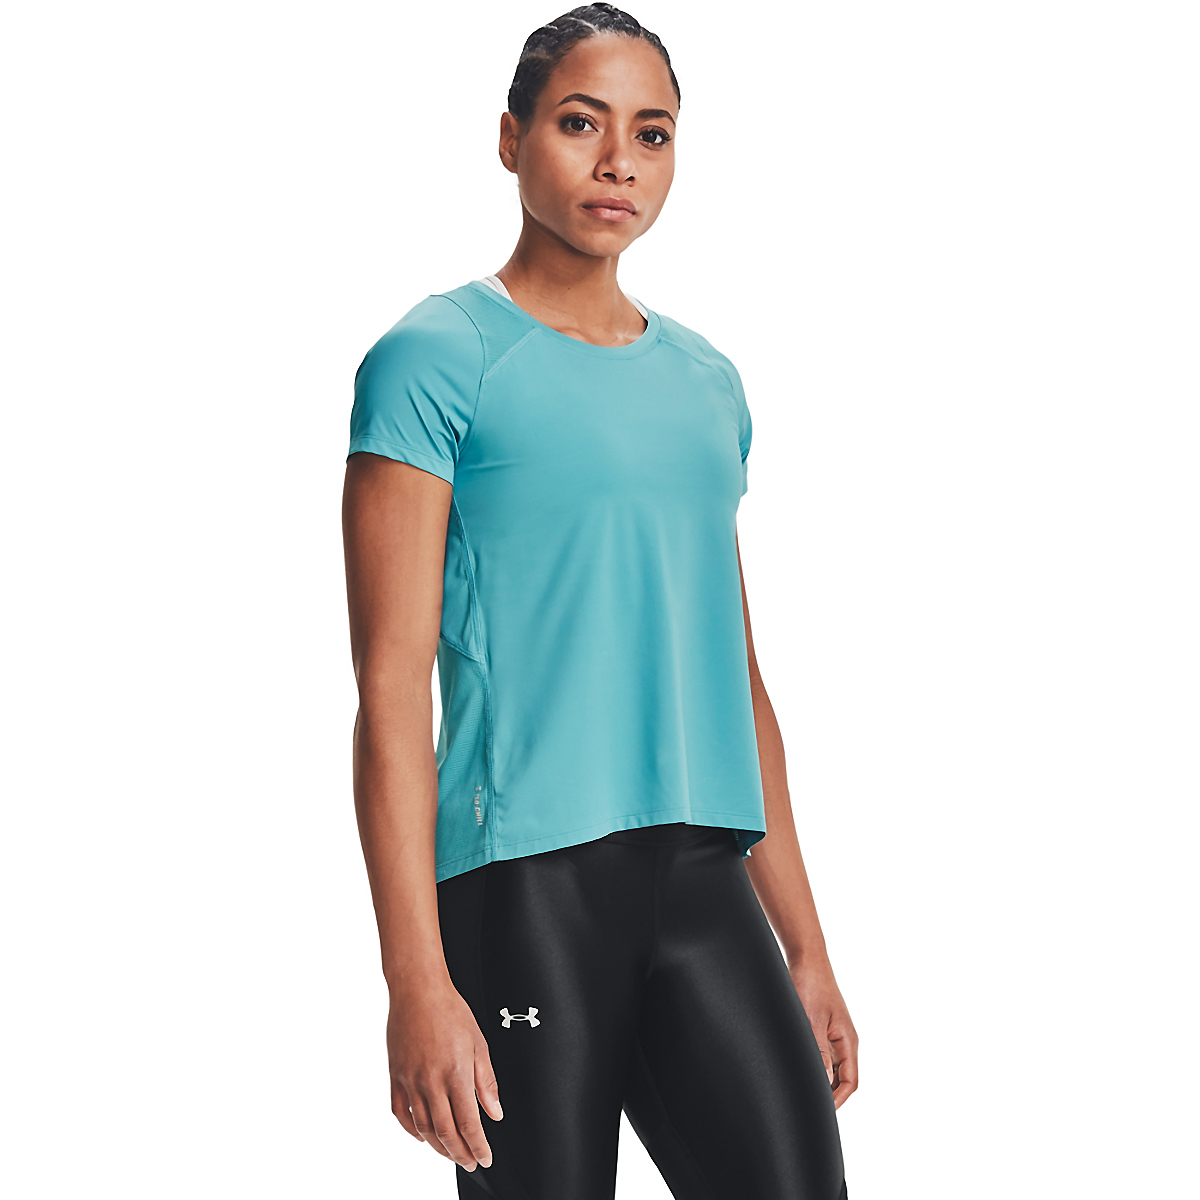 Women's Under Armour Iso-Chill Run Short Sleeve Tee, , large, image 1